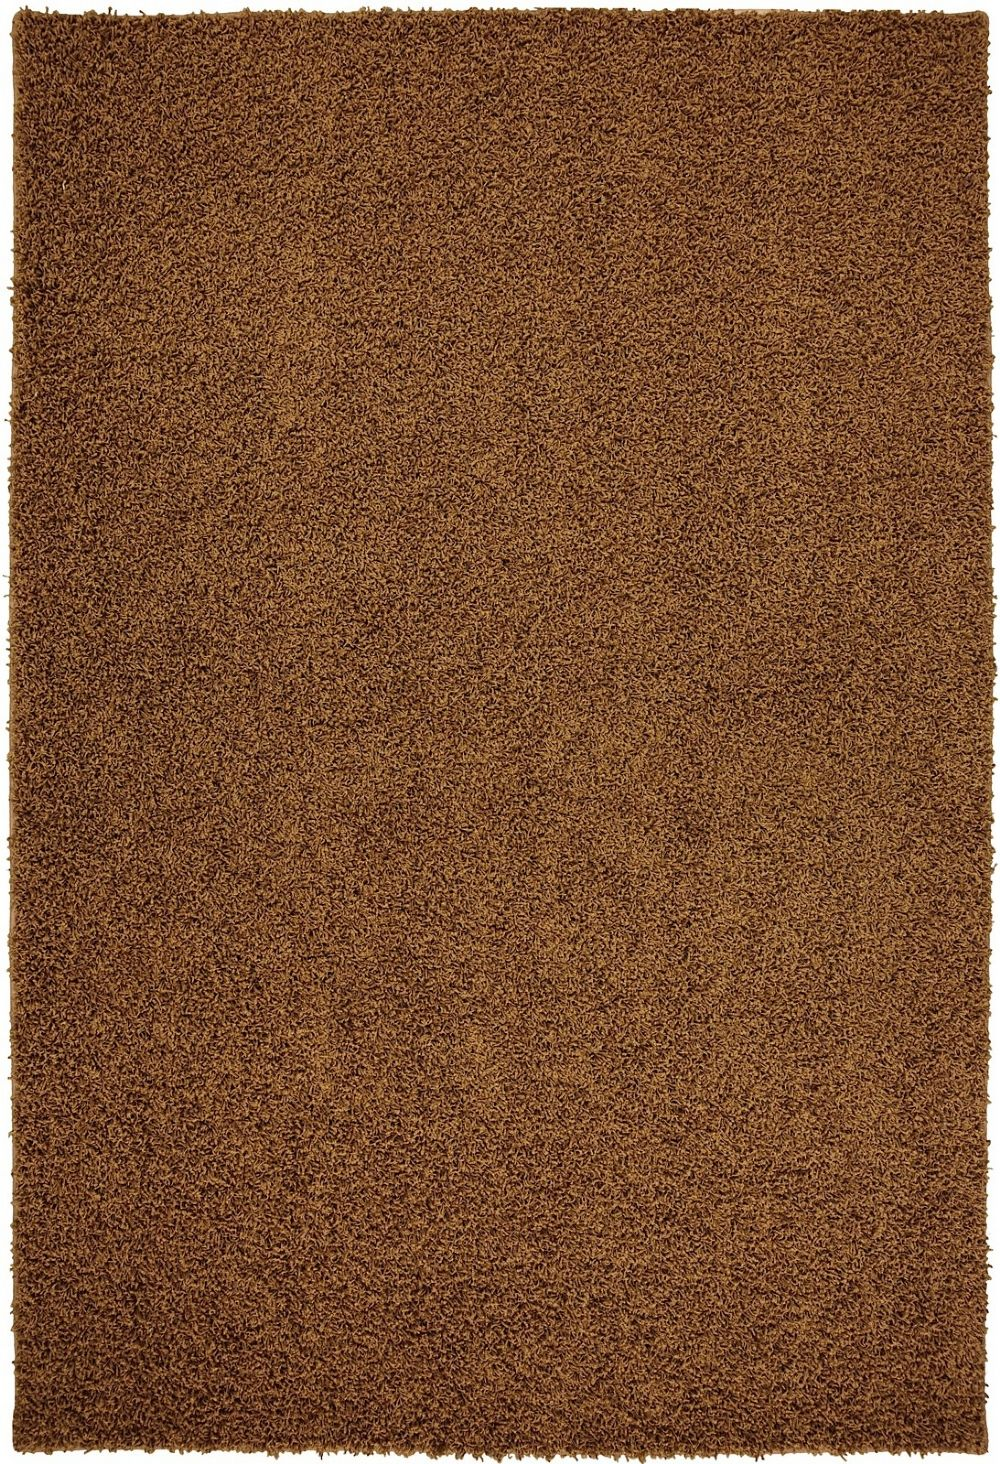 mohawk smart strand contemporary area rug collection